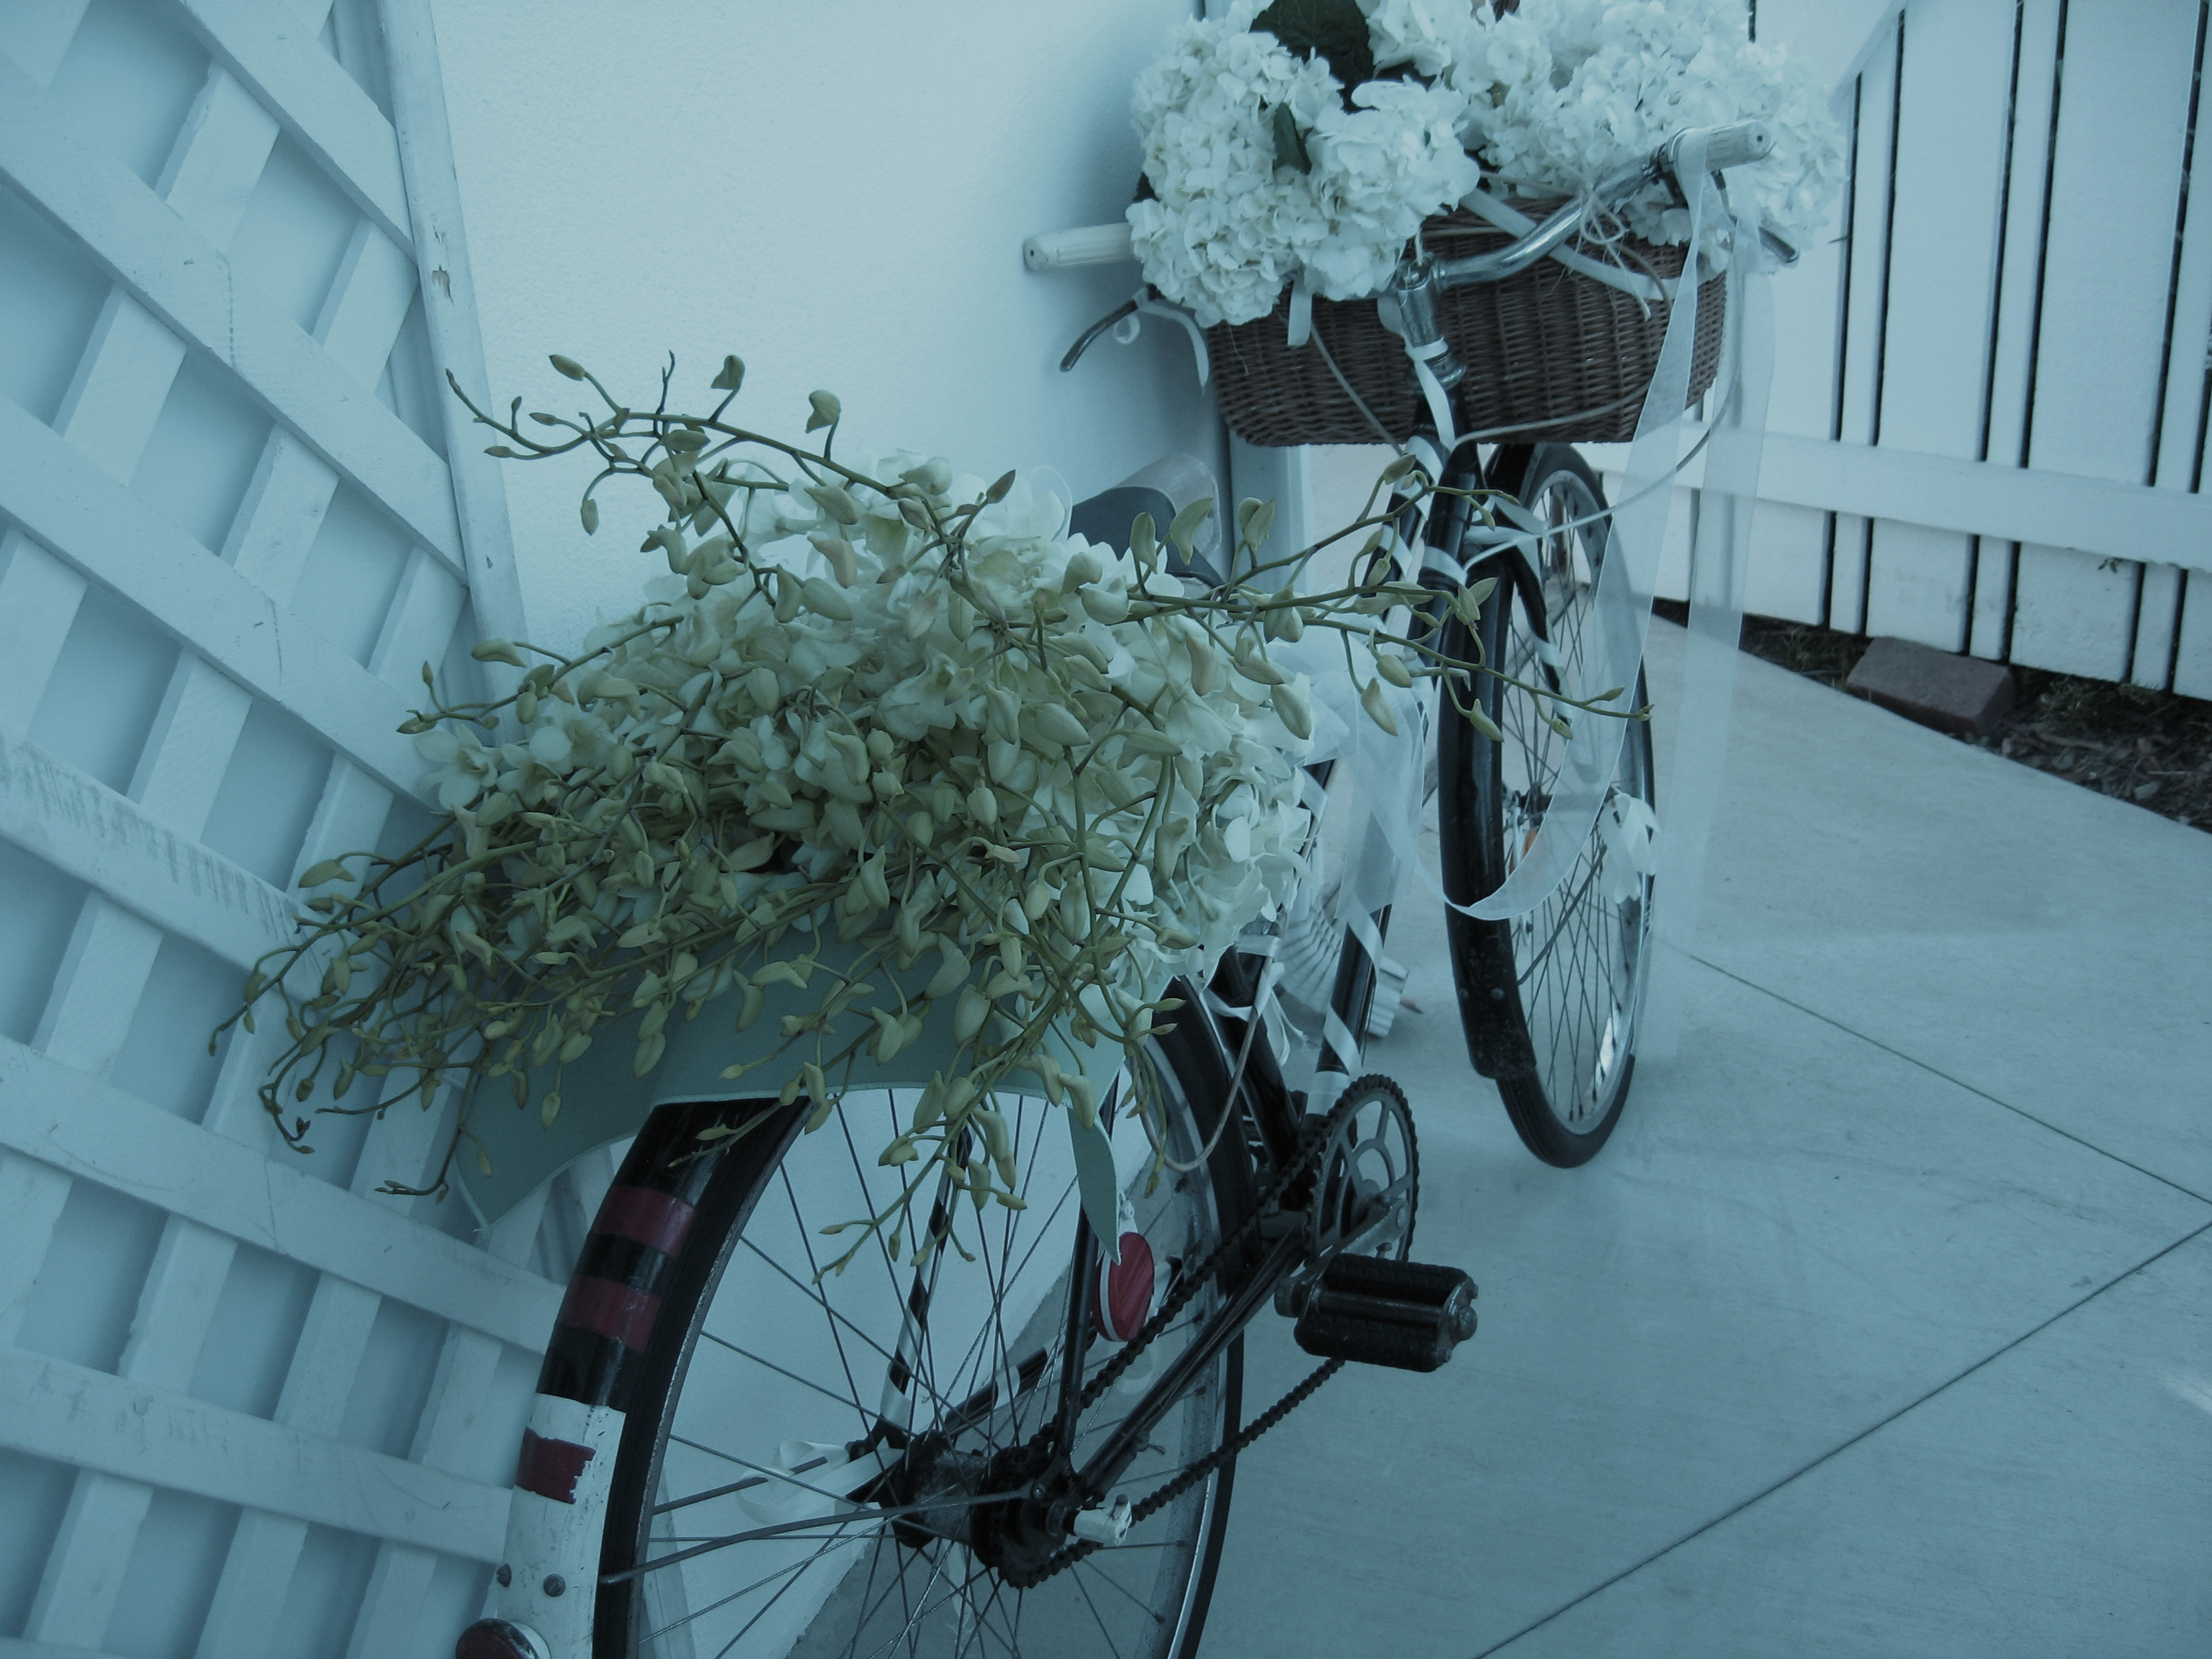 Orchids, Catering, Antique, Choice, critics, dendrobian, Bicycle